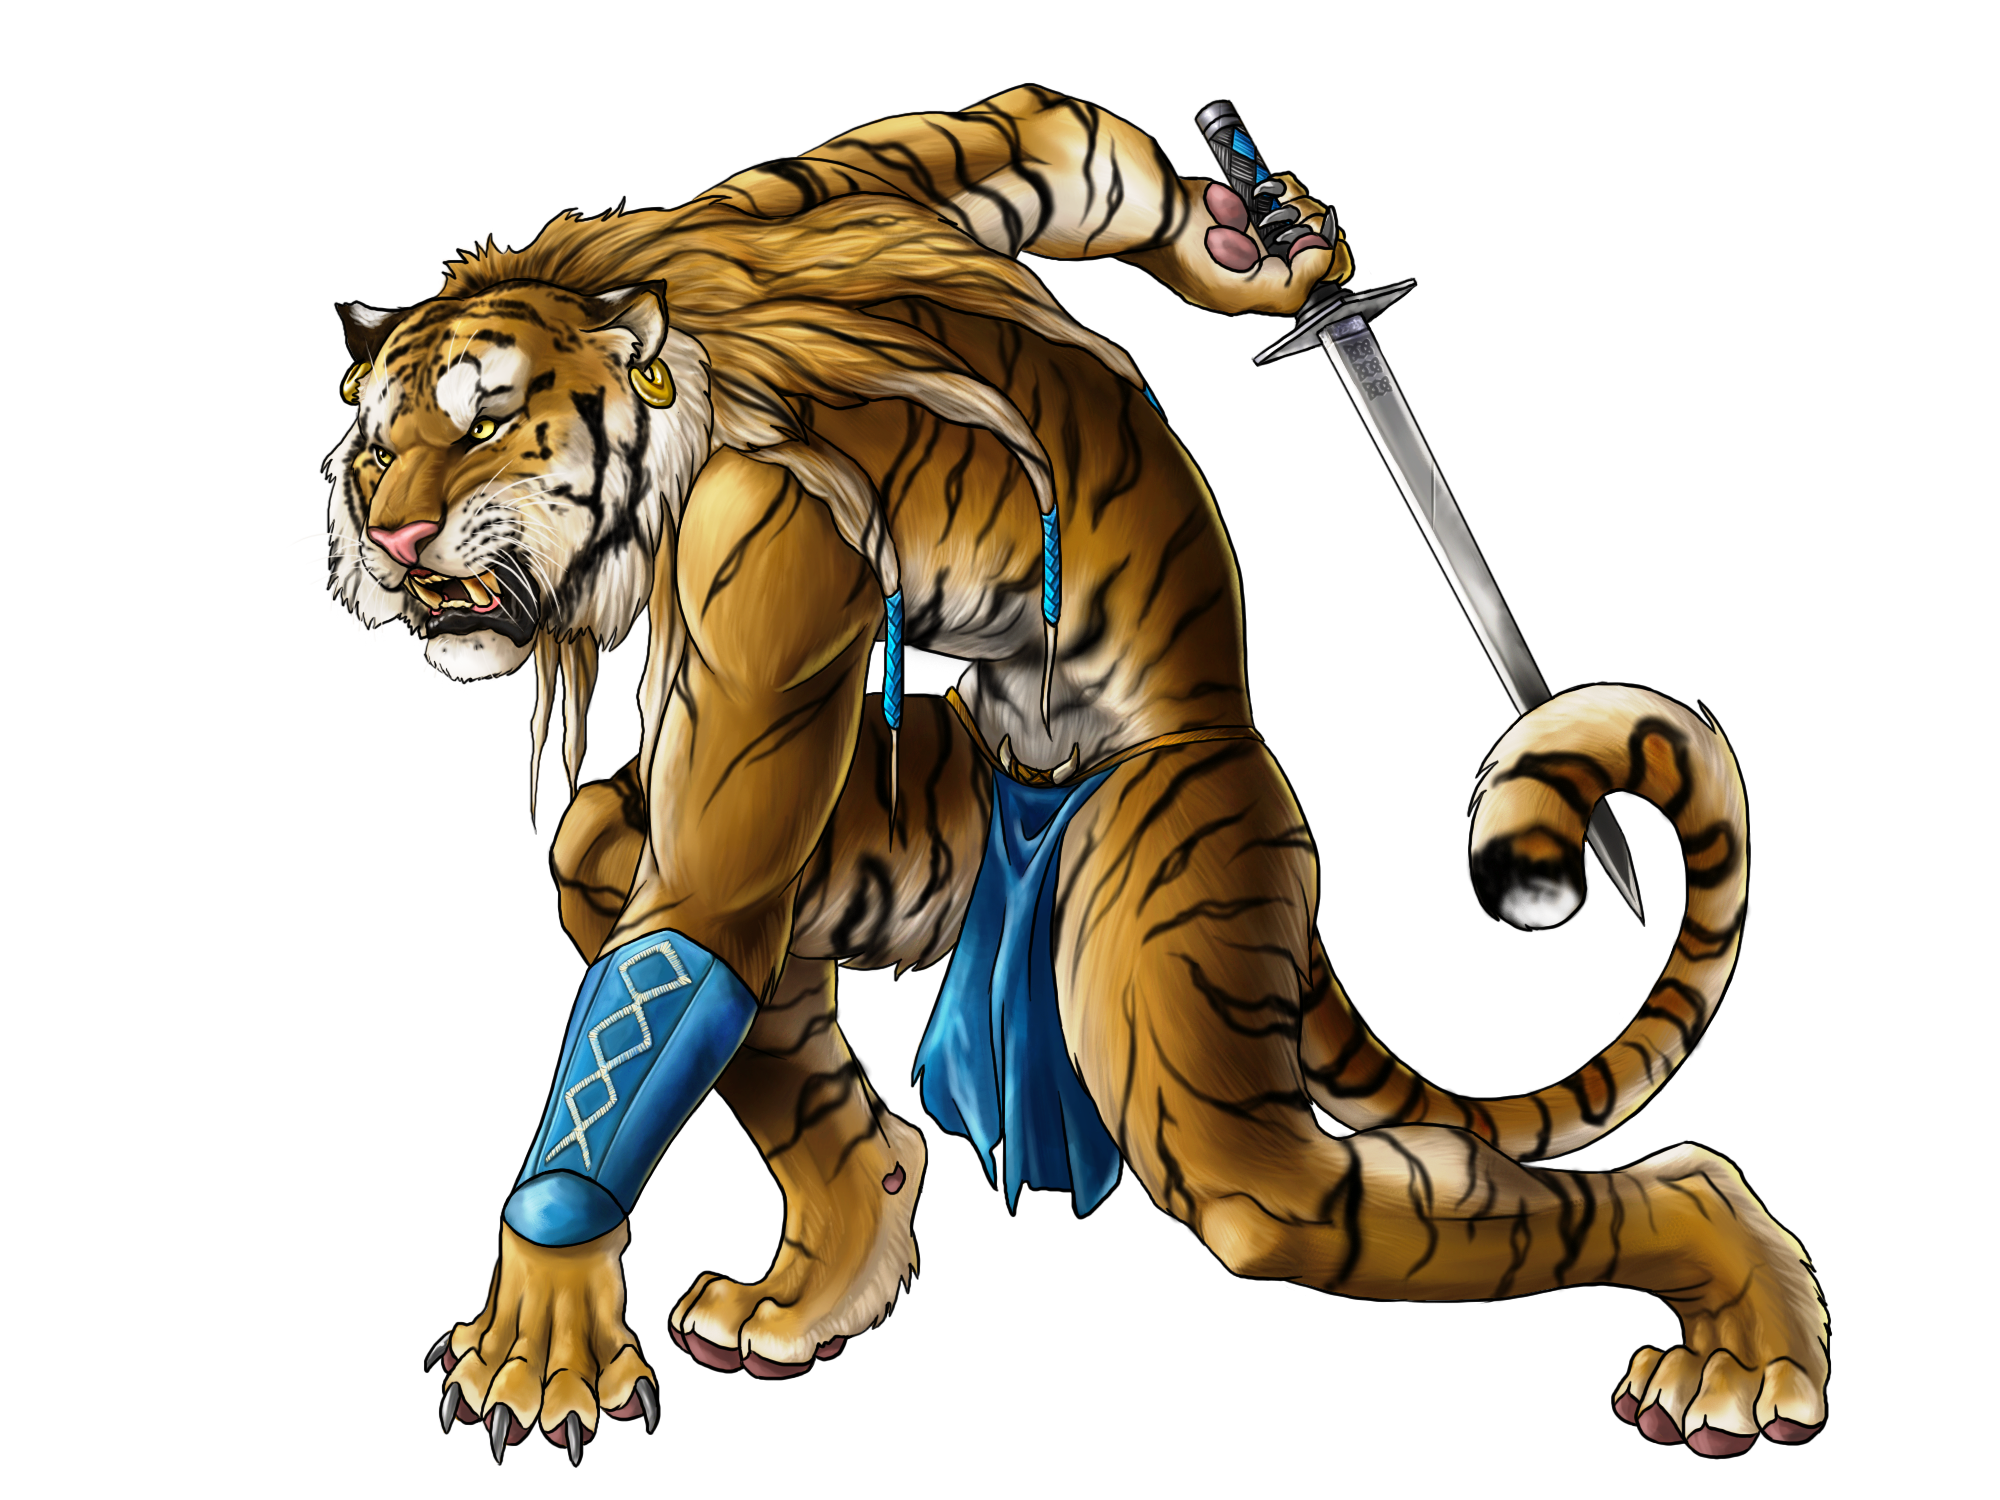 Drawing tigers humanoid. An anthropomorphic tiger warrior